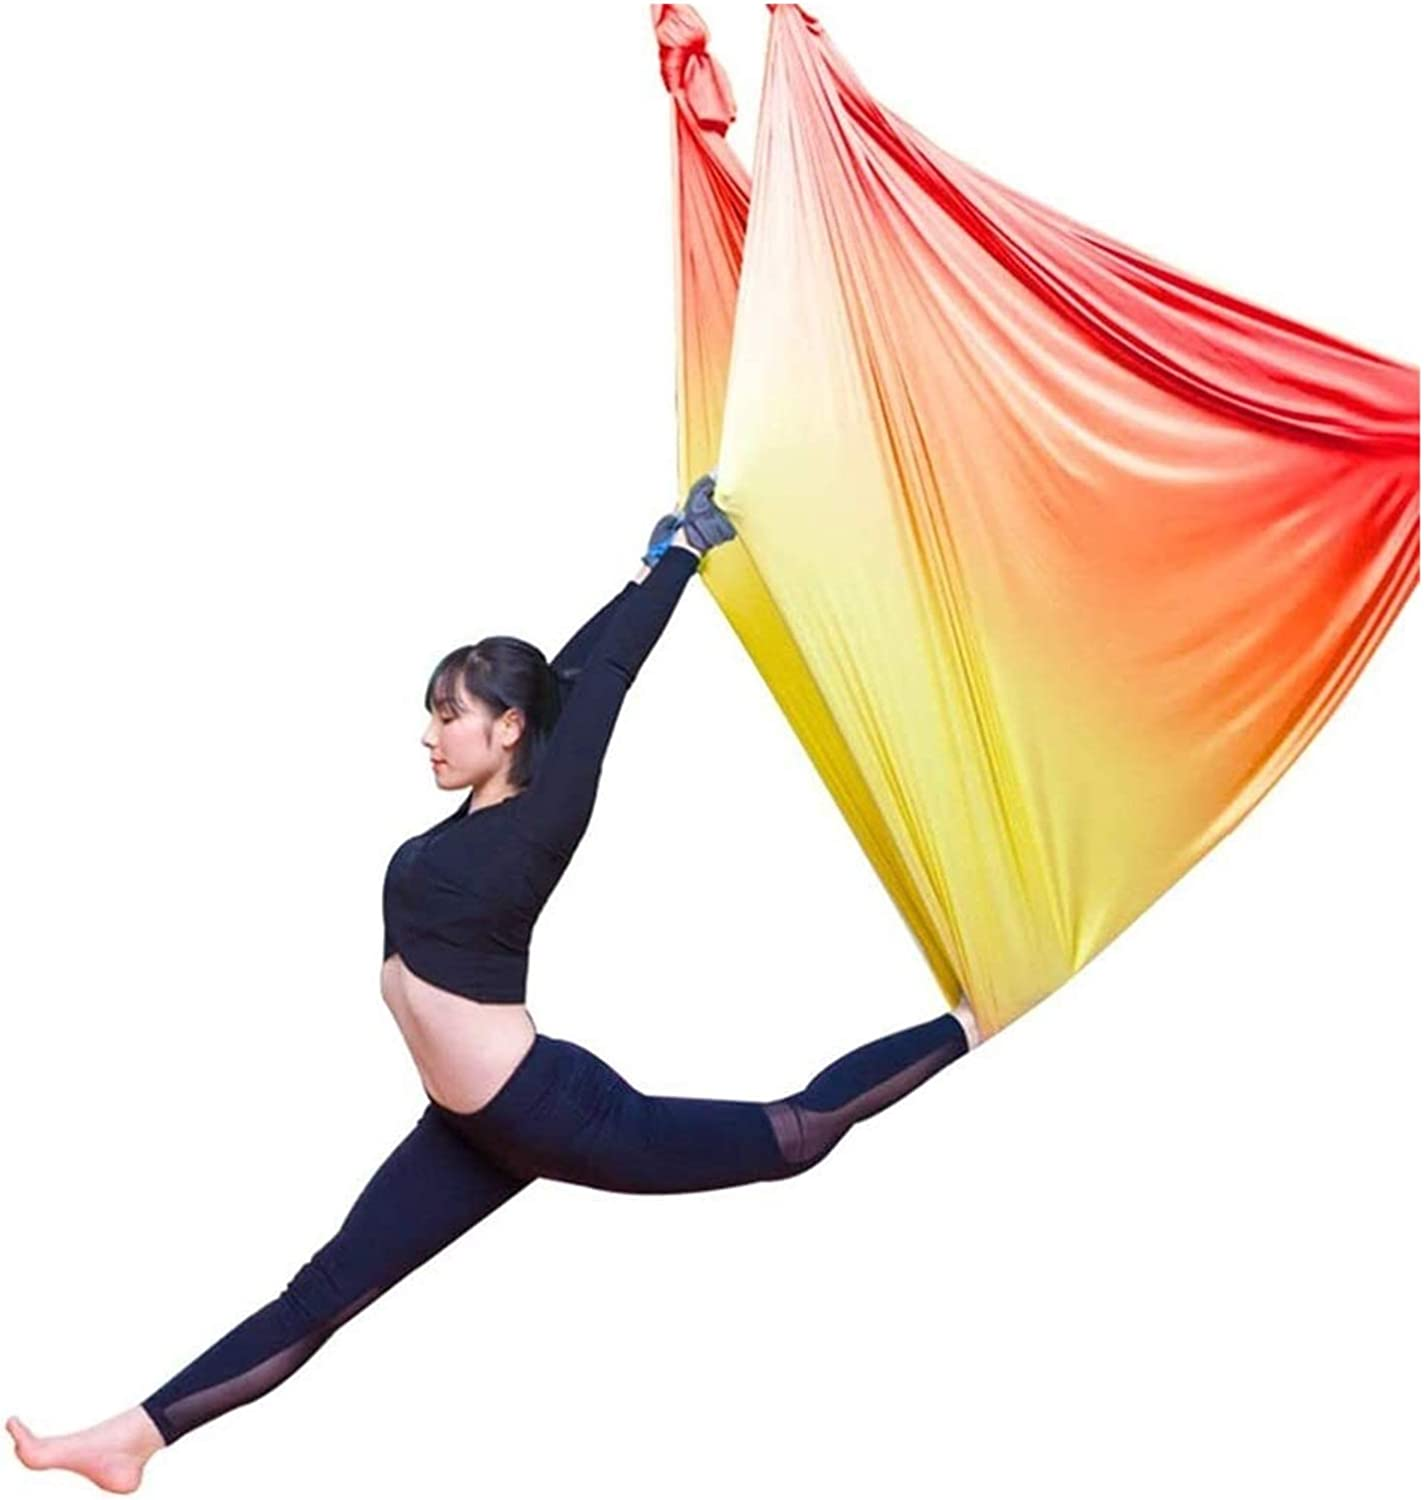 XUNMAIFLB Sensory Indoor Large discharge sale Aerial Yoga Elastic Max 76% OFF Swing Set H Therapy